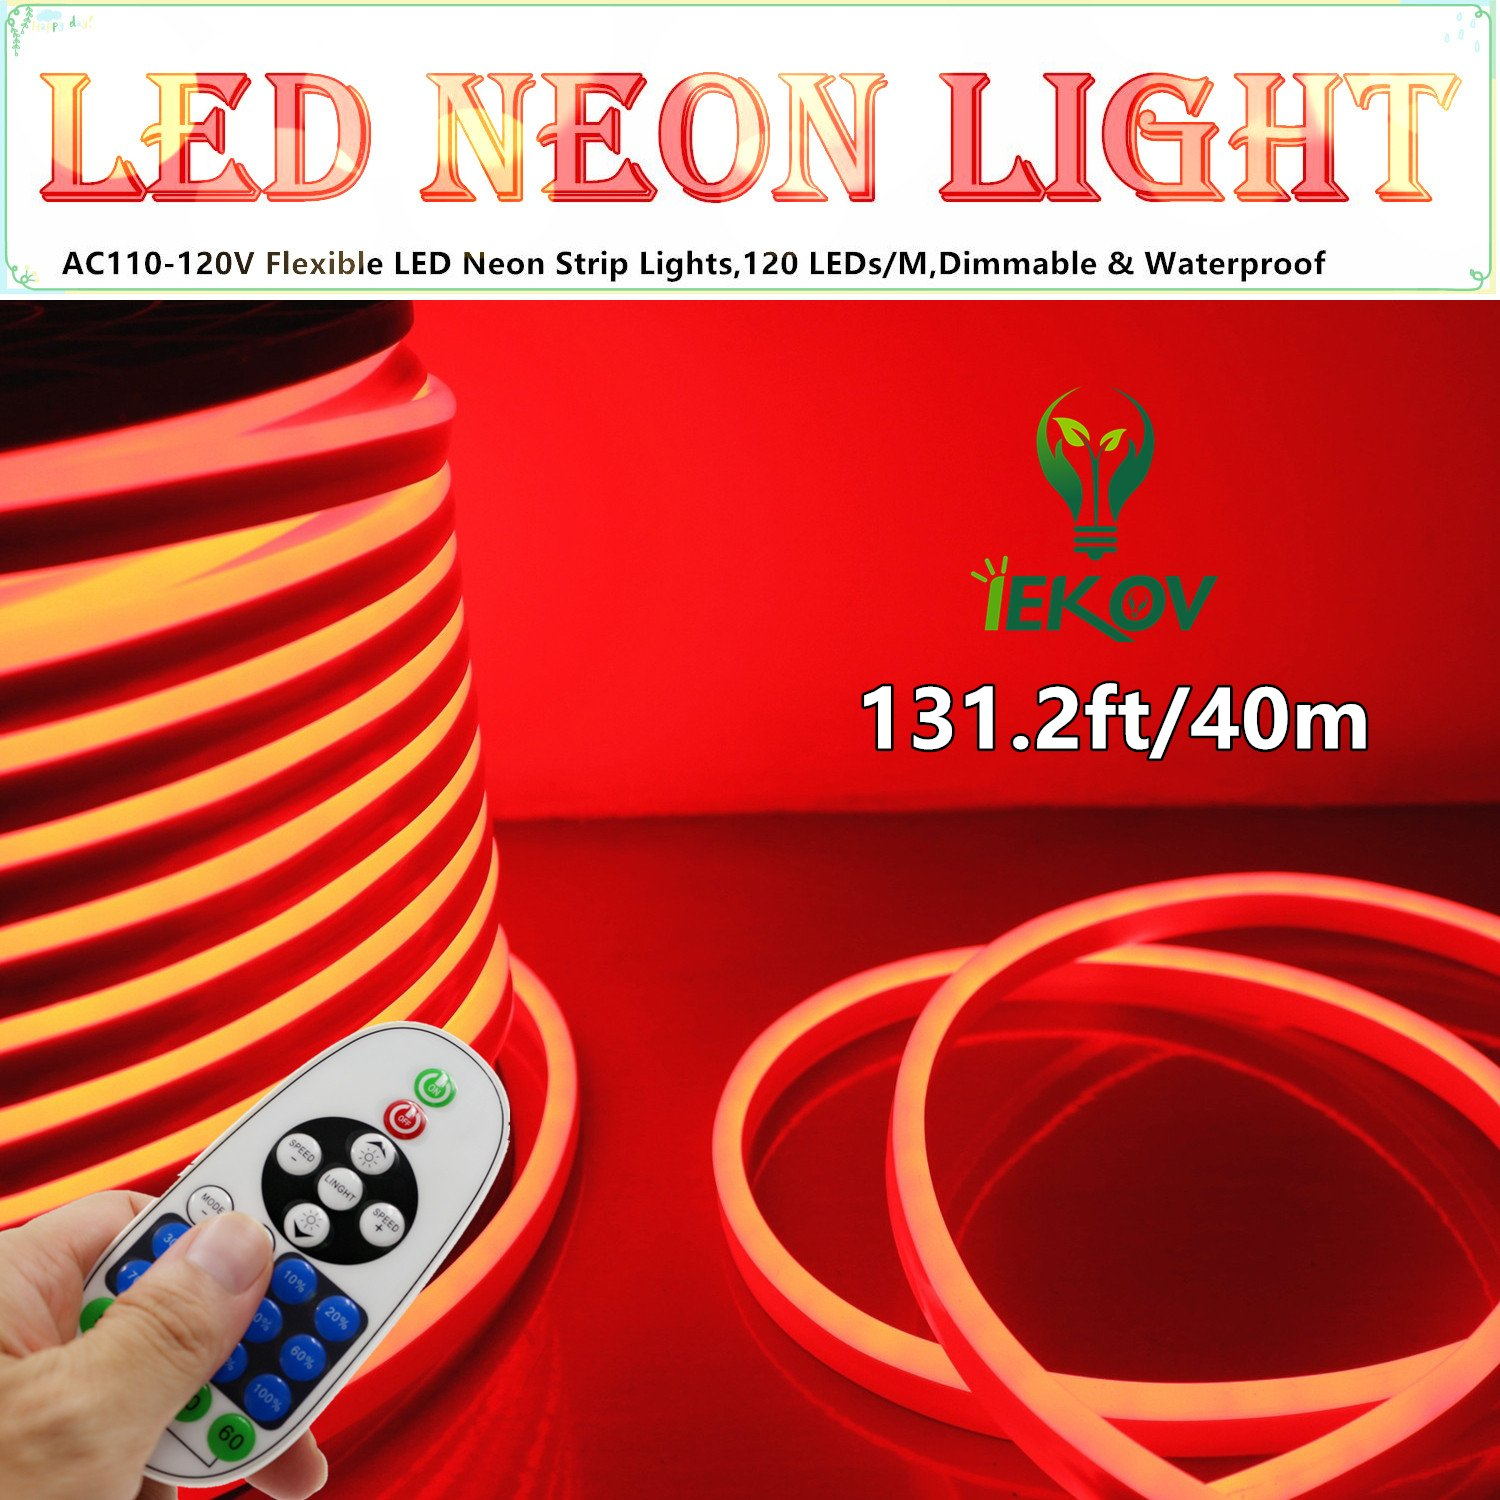 LED NEON LIGHT, IEKOV™ AC 110-120V Flexible LED Neon Strip Lights, 120 LEDs/M, Dimmable, Waterproof 2835 SMD LED Rope Light + Remote Controller for Home Decoration (131.2ft/40m, Red)